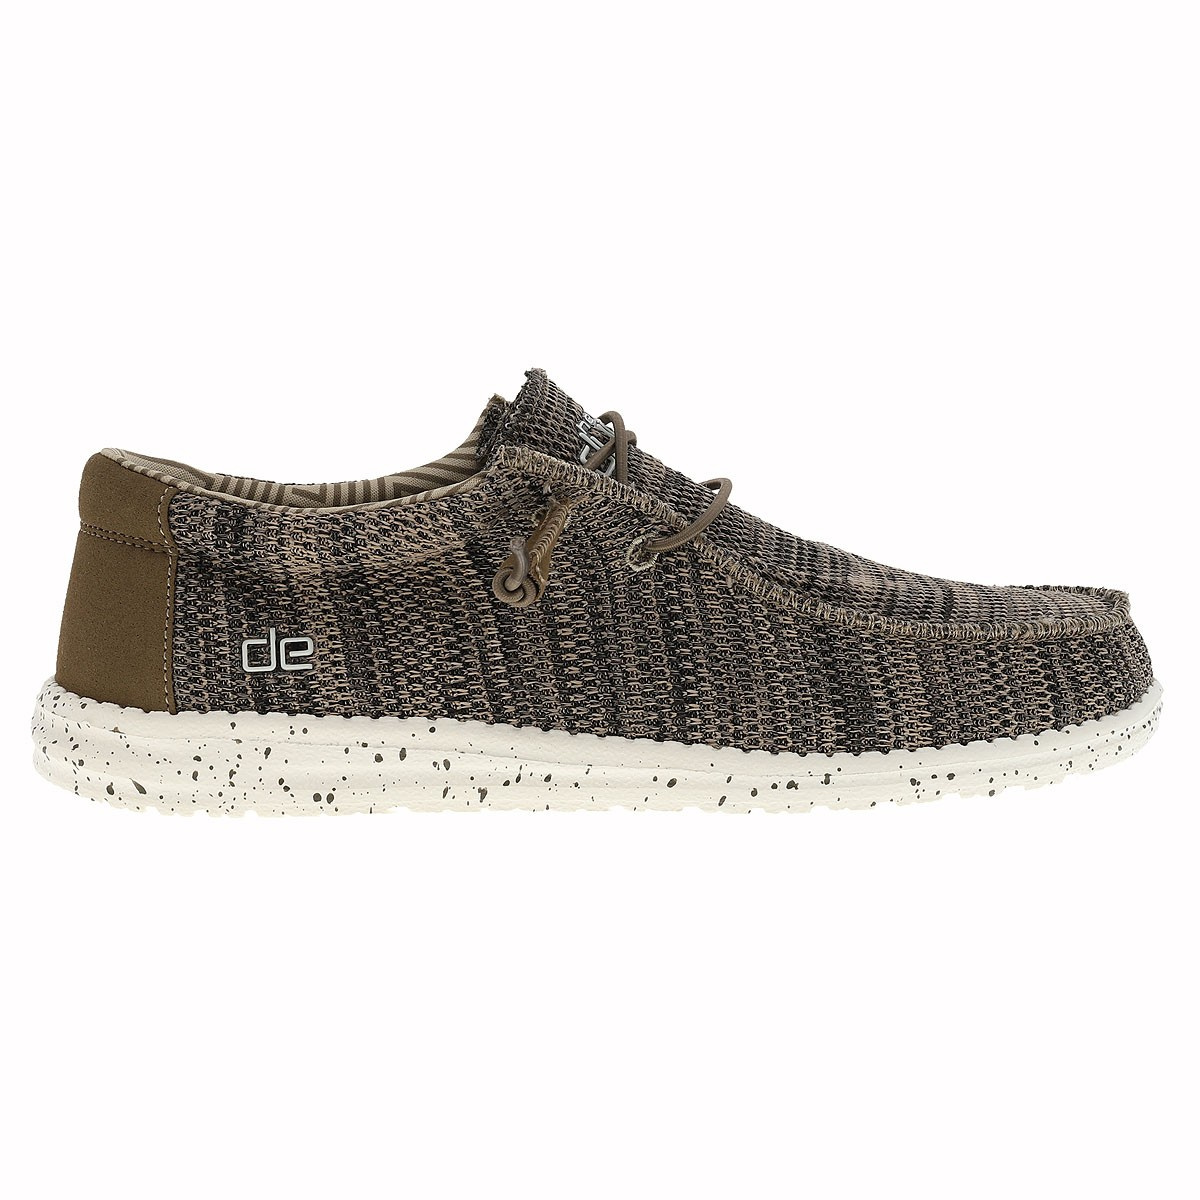 Sox HEYDUDE homme Waly Bateau marron Chaussures 0m8OvNnw